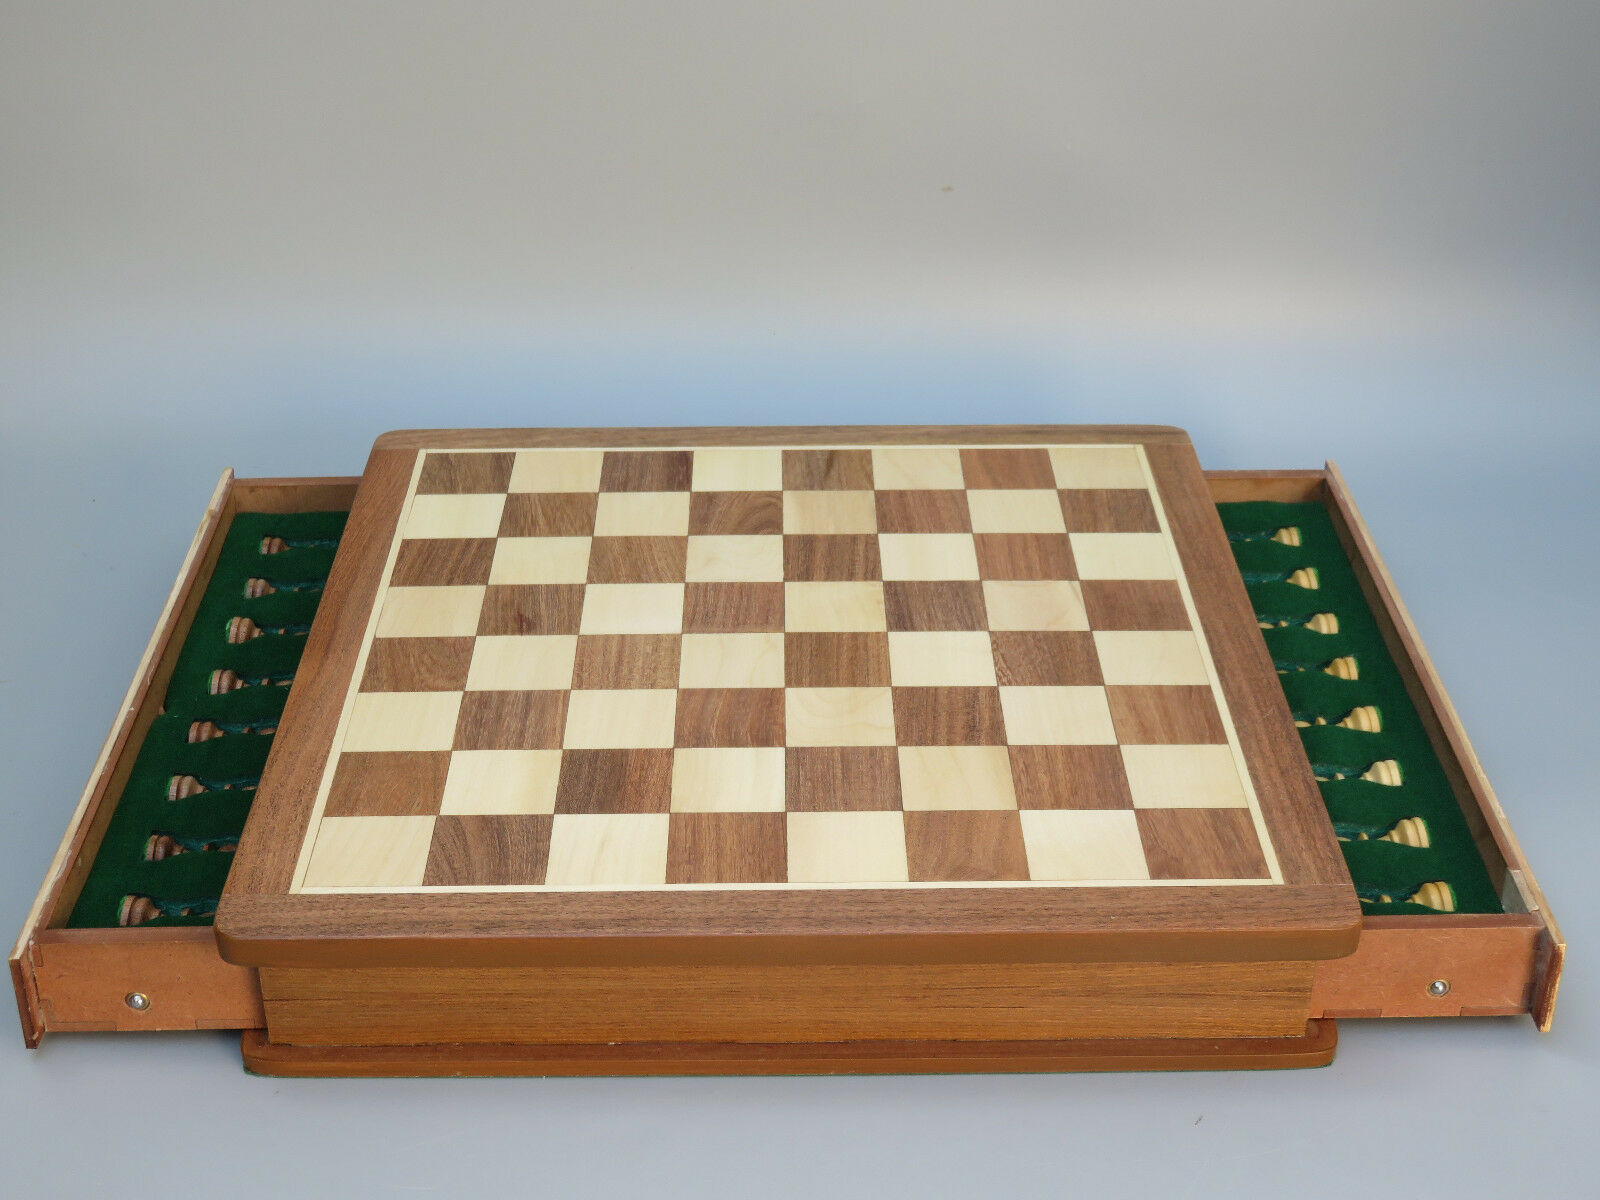 Chess Set Carré Solide palissandre Wooden Chess Set Board Game 14